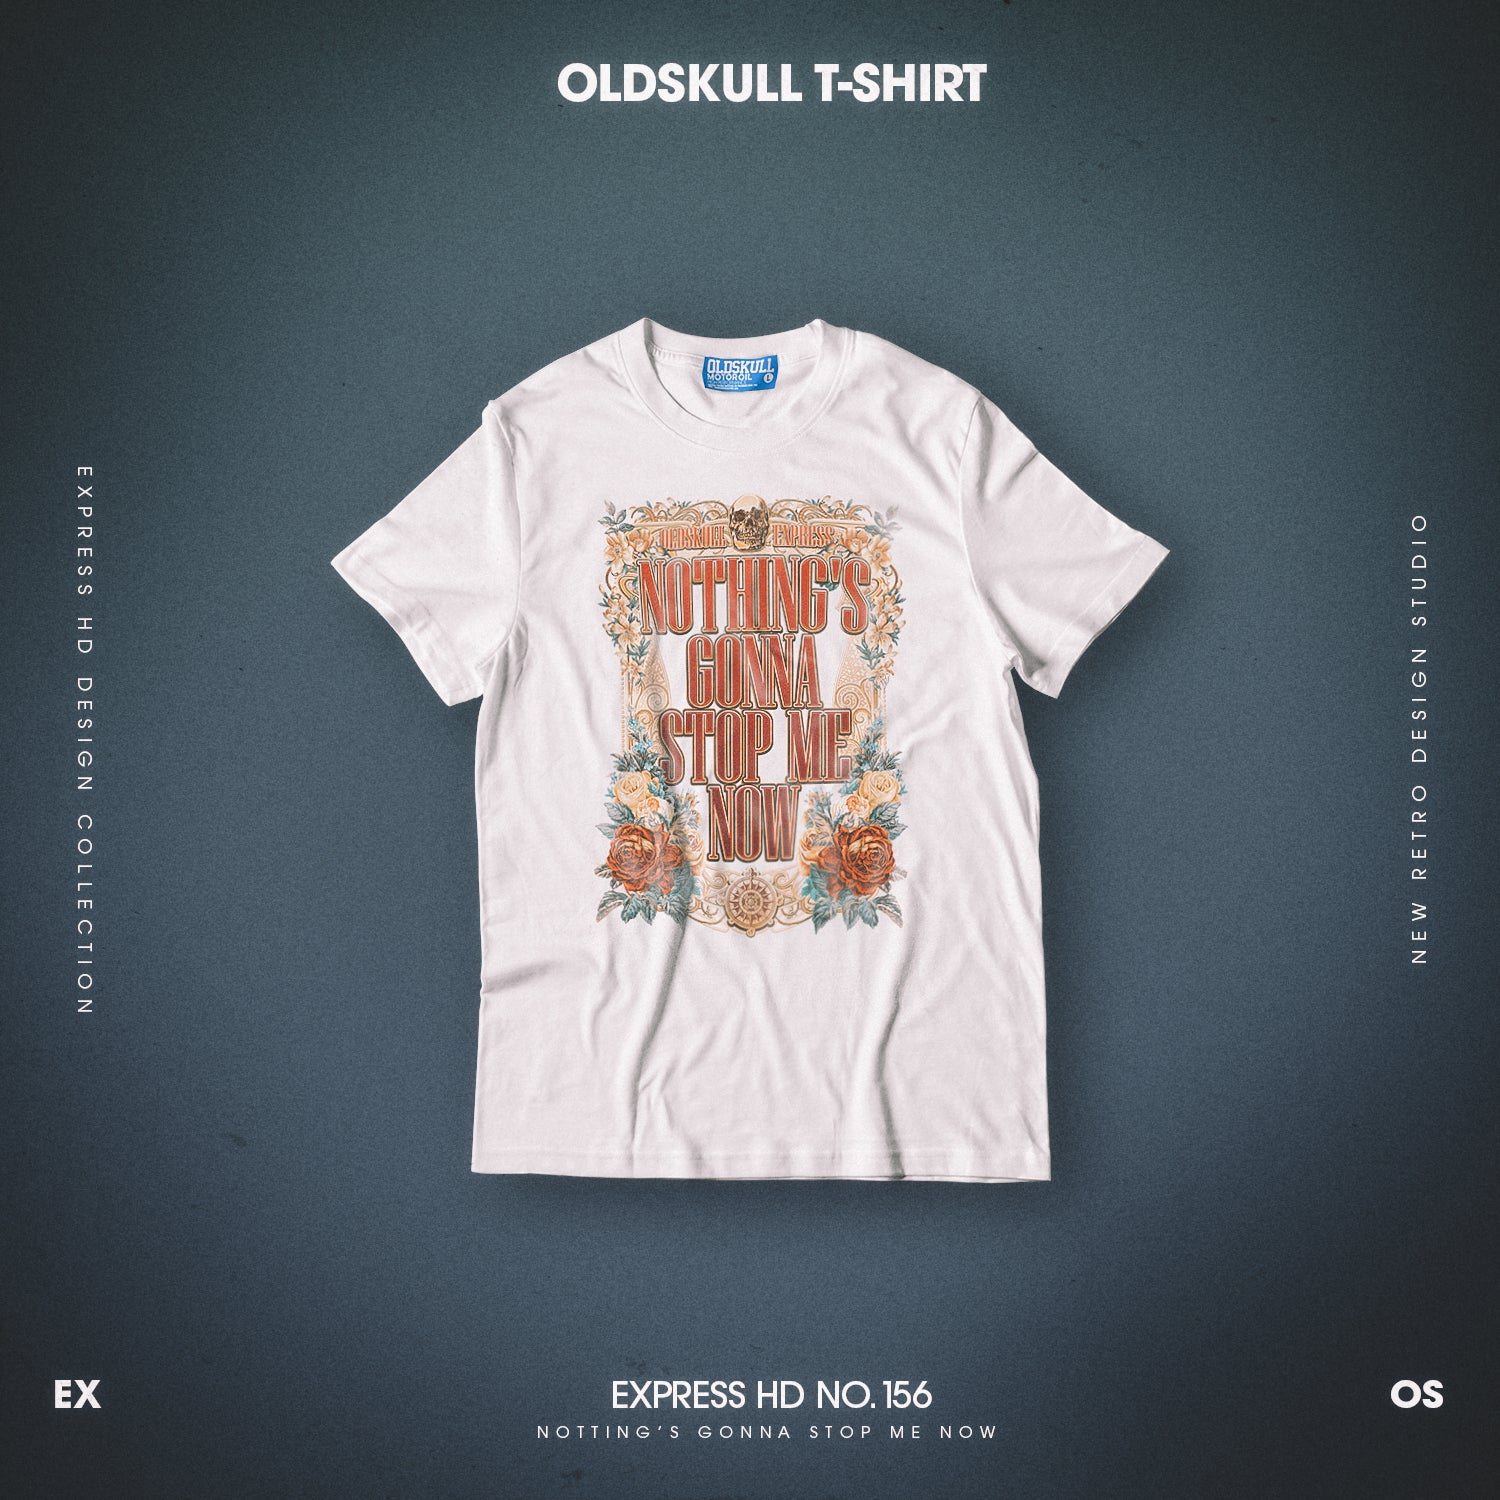 0b4a4a45 Oldskull t-shirt store, t-shirt for everyday wear, online selected